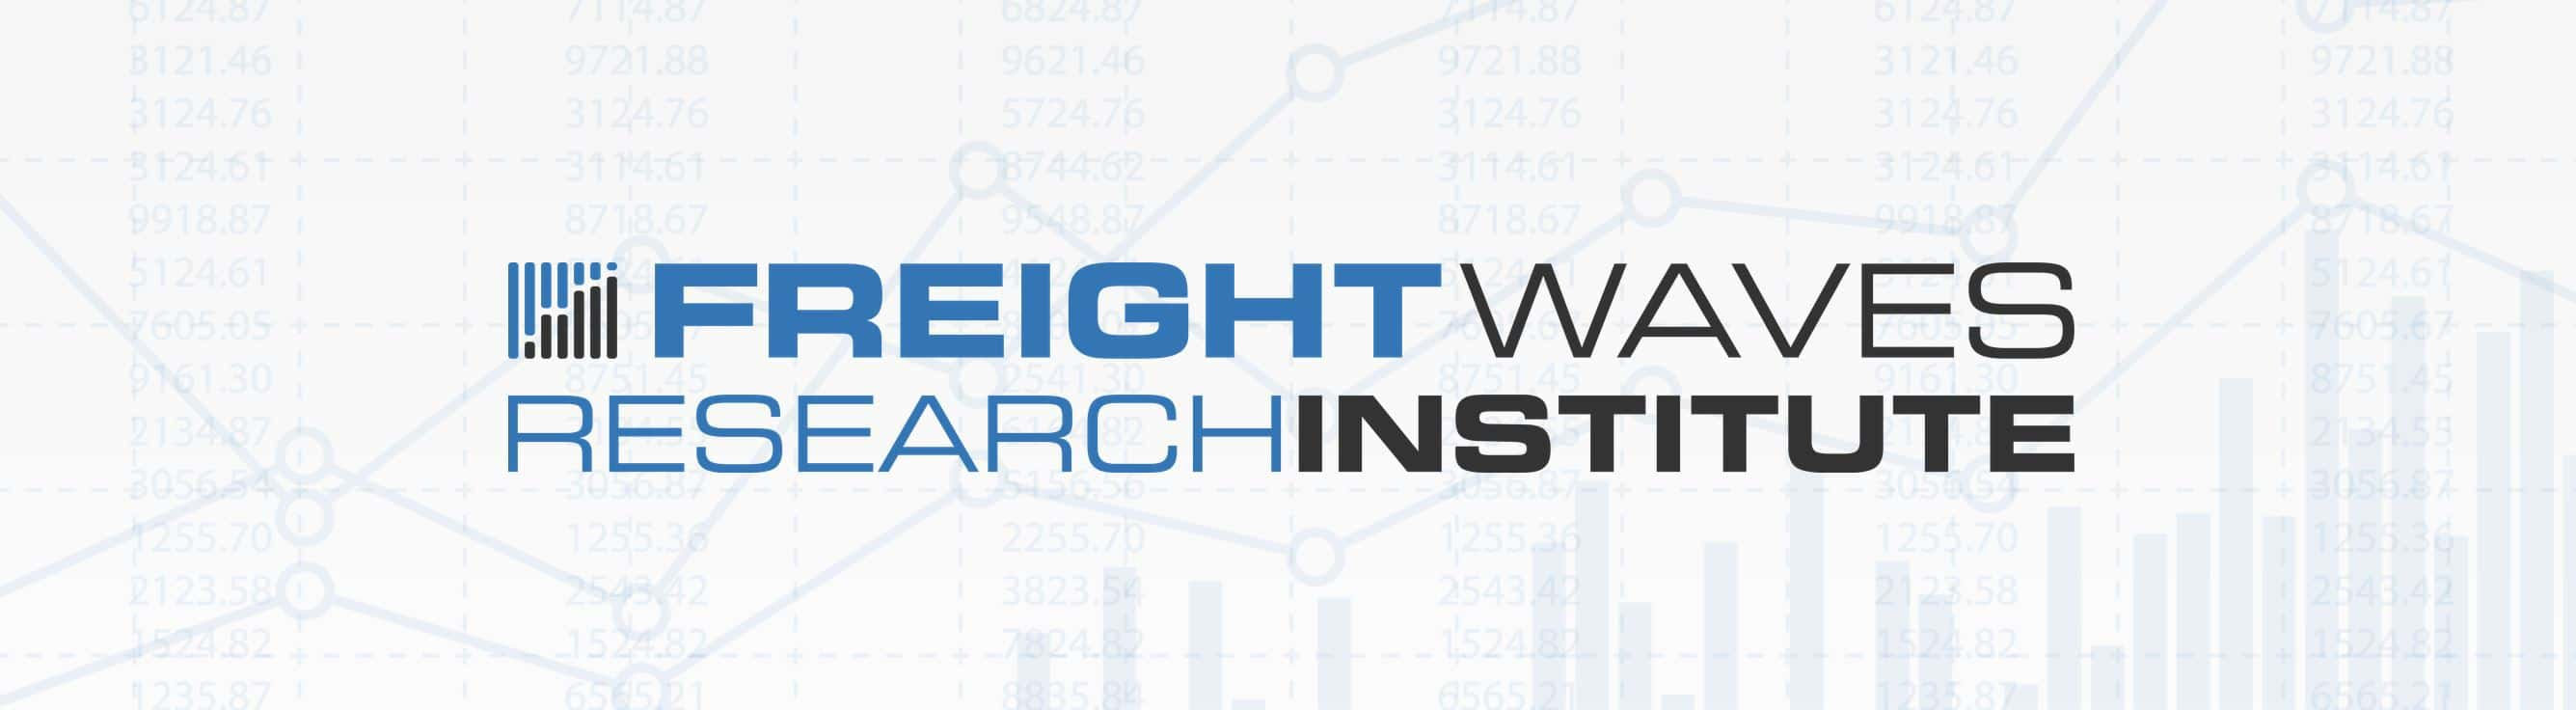 FreightWaves Research Institute